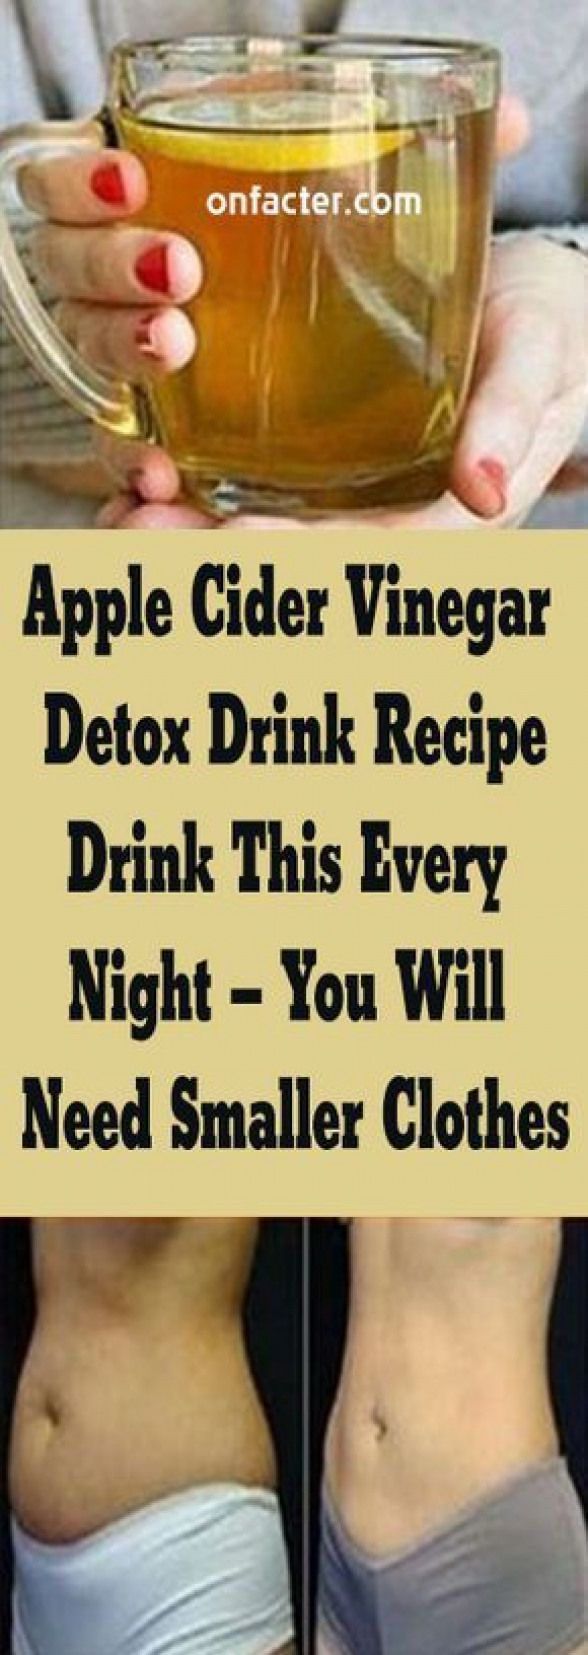 Apple Cider Vinegar Detox Drink Recipe:- Drink This Every Night  You Will Need Smaller Clothes